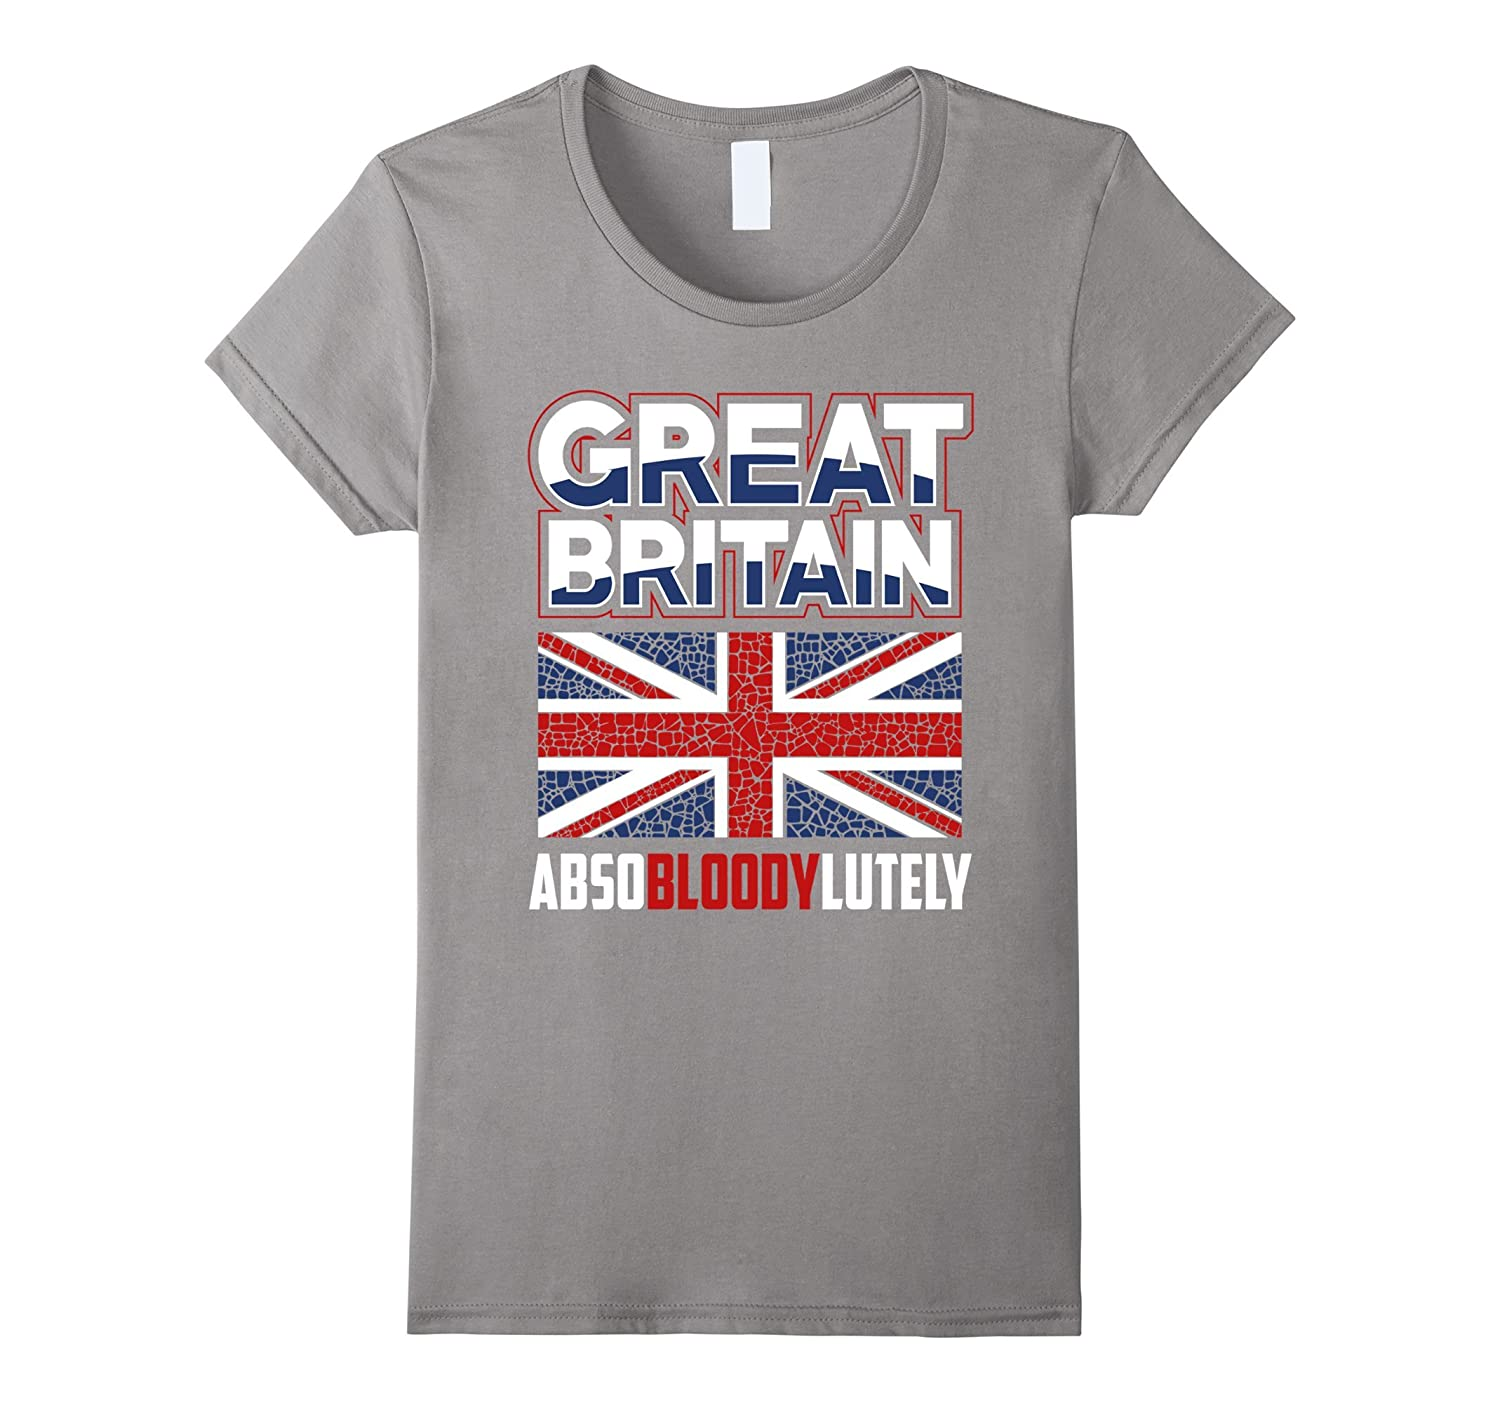 Union Jack Great Britain Absobloodylutely UK Flag T-shirt-Teevkd